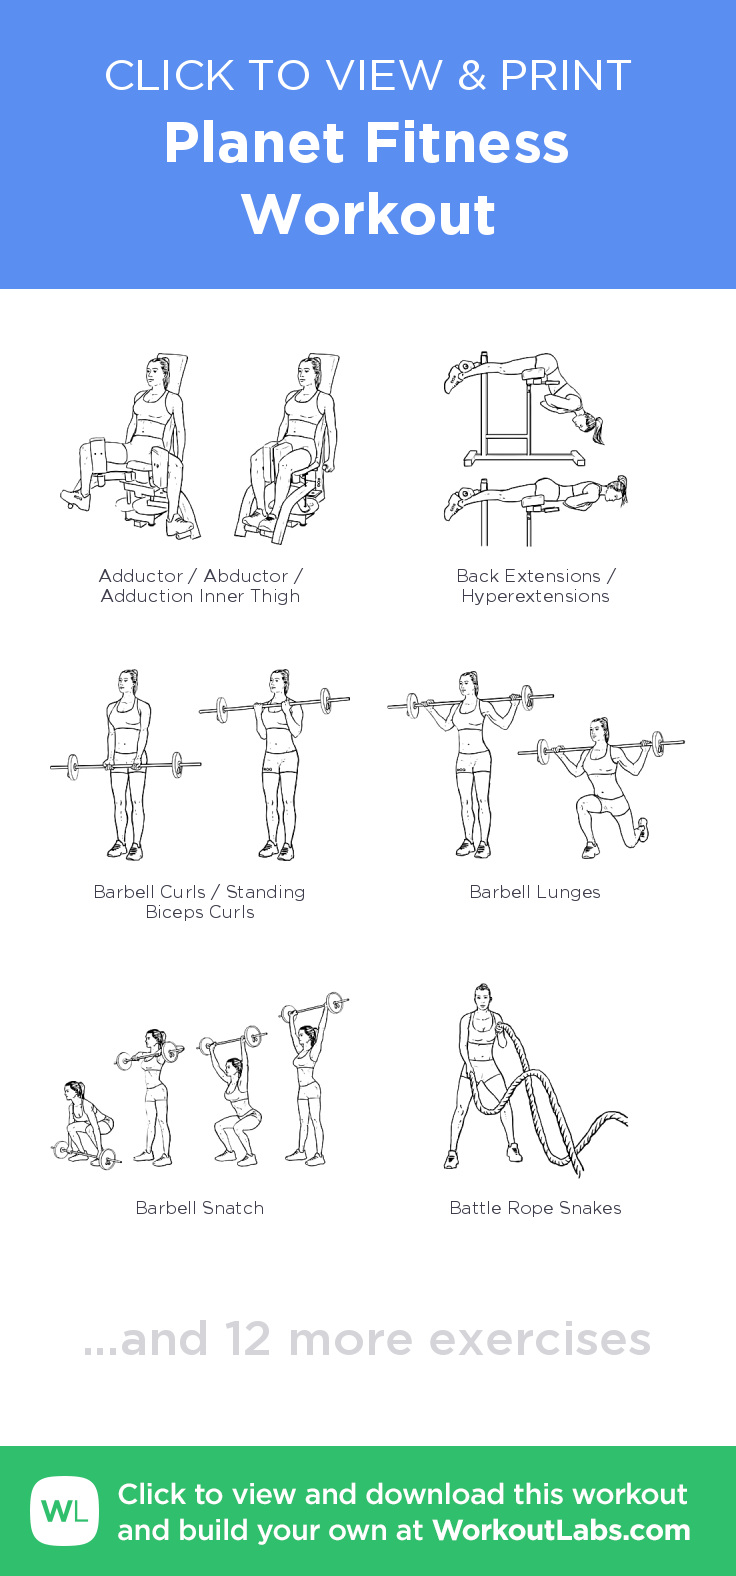 Planet Fitness Workout Click To View And Print This Illustrated Exercise Plan Created With Wo Planet Fitness Workout Planet Fitness Workout Plan Diy Workout